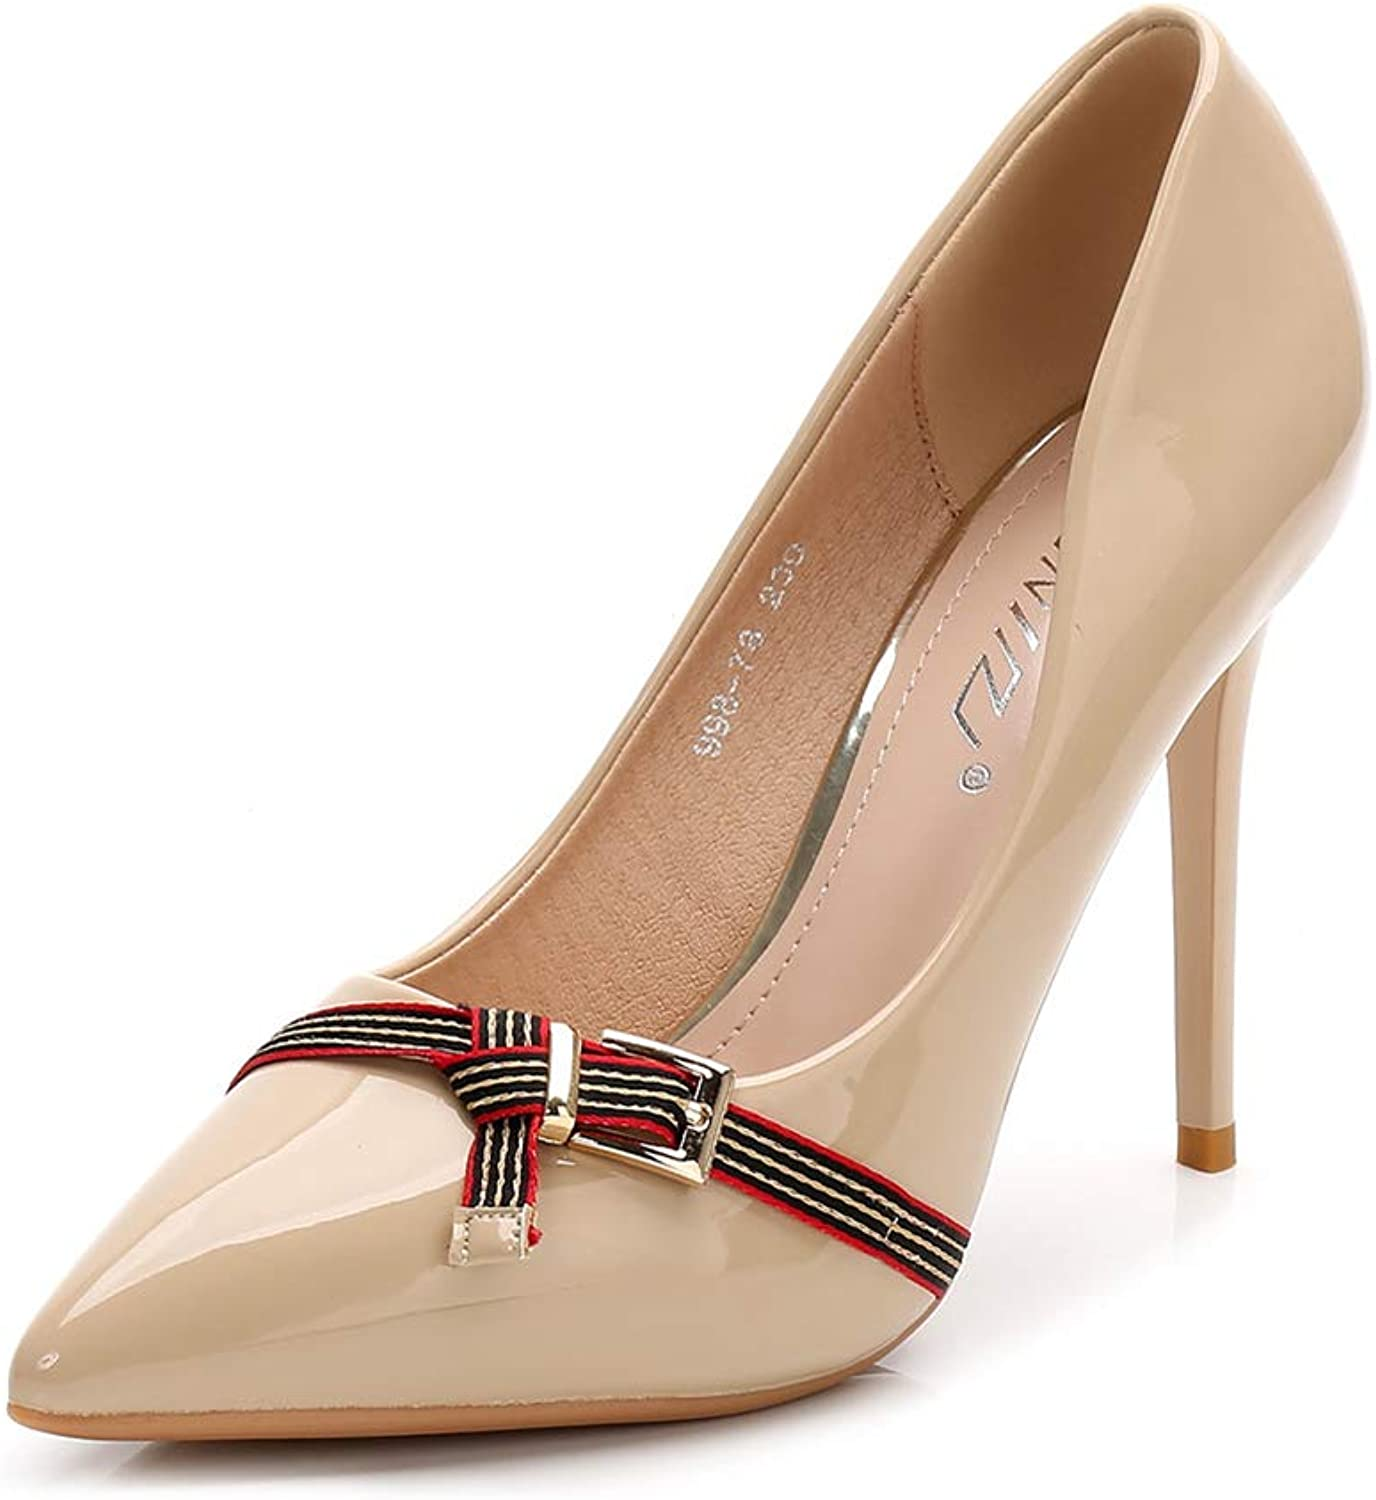 Cici shoes Women's Classic Slip On Pointed Toe High Heel Wedding Dress Pumps shoes